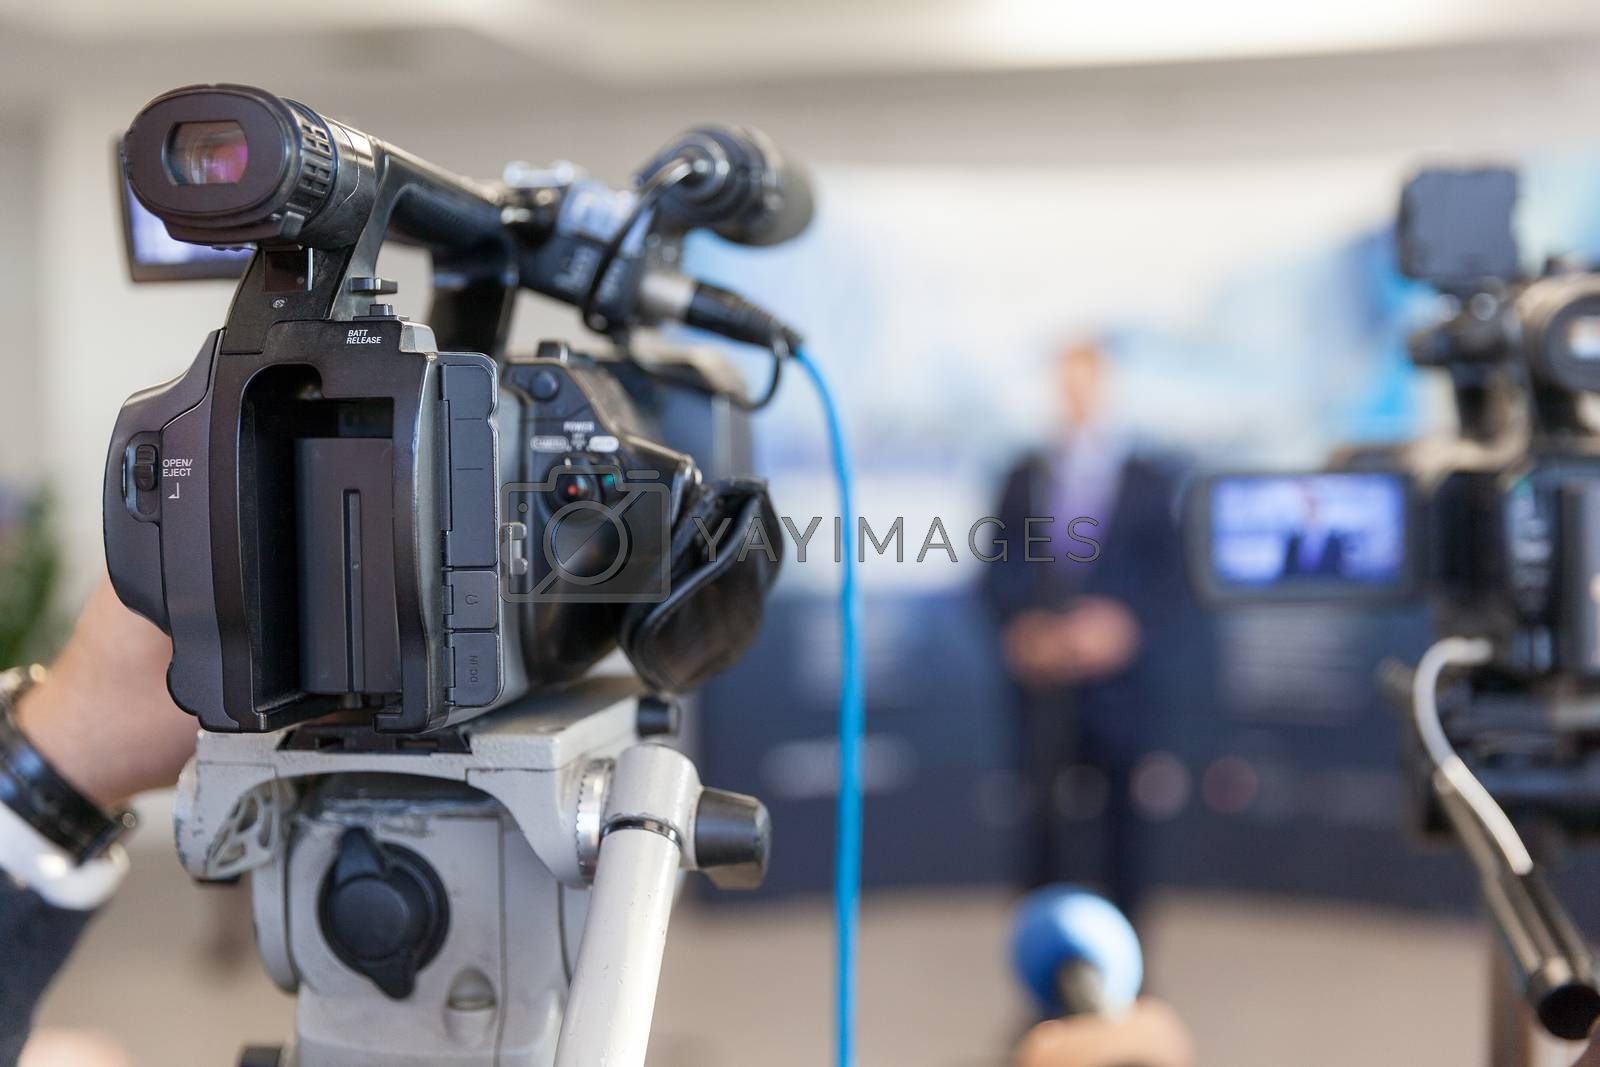 Video camera in focus, blurred spokesperson in background. Corporate news conference.